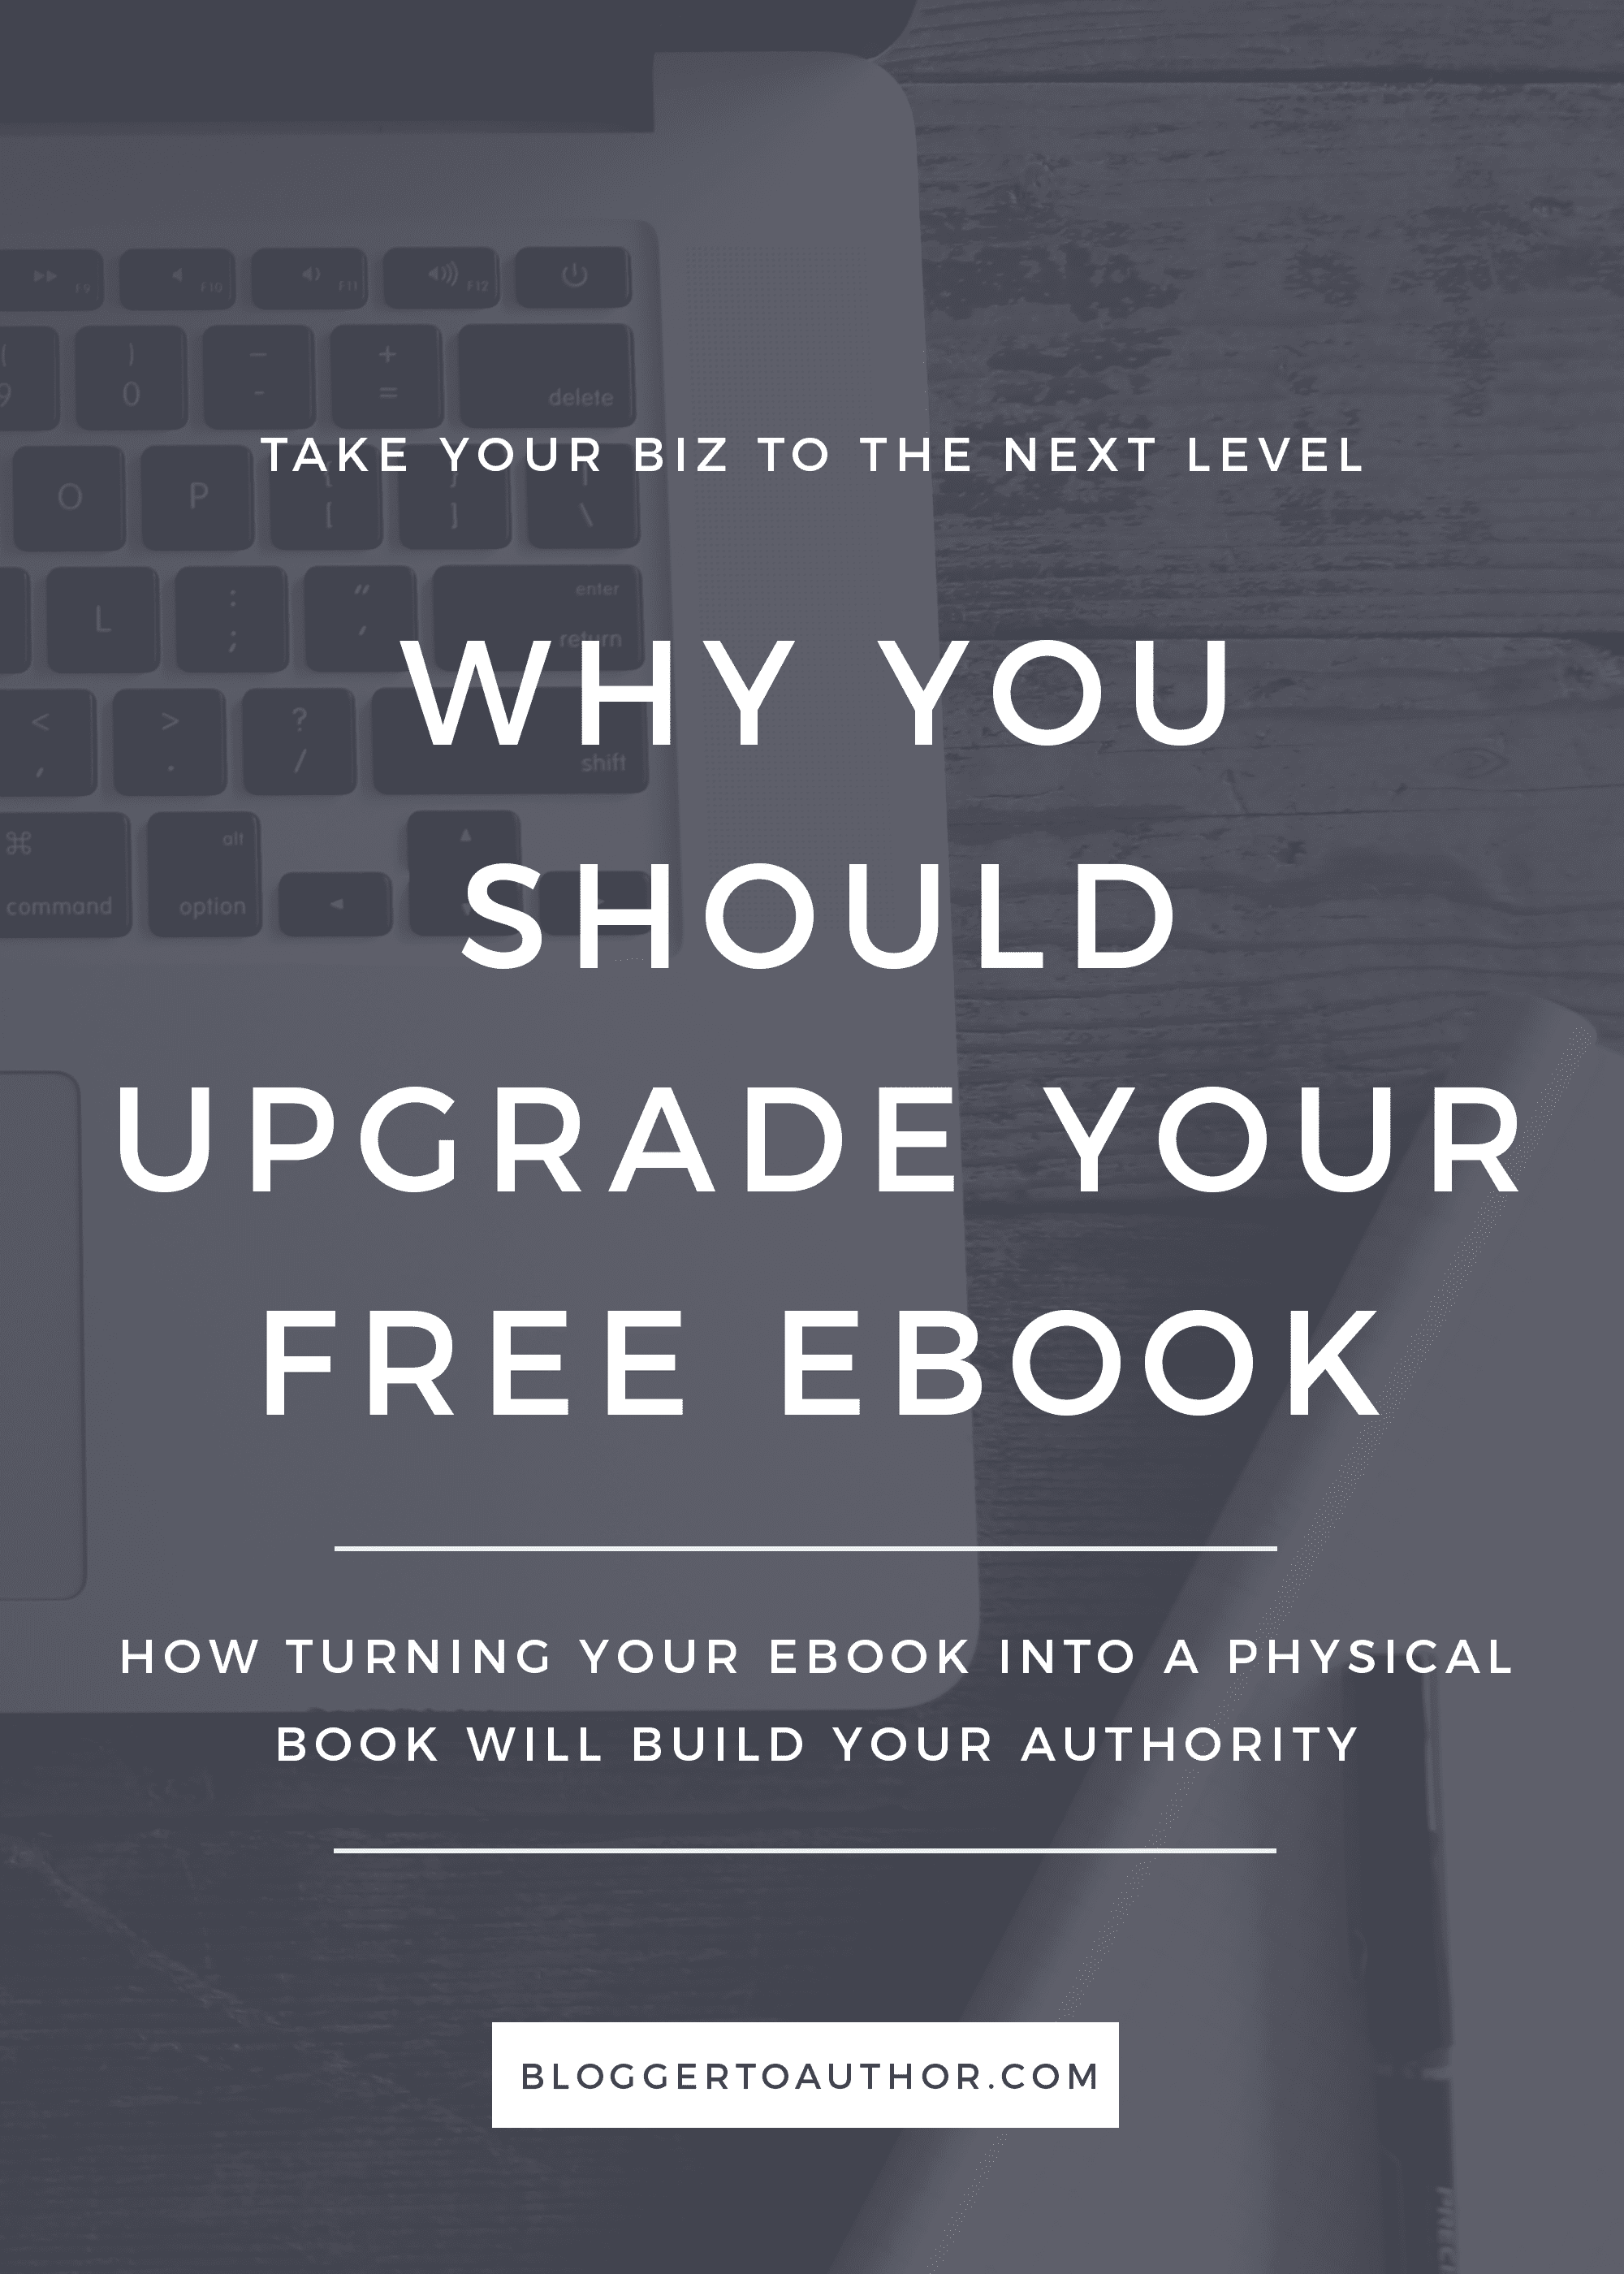 Why You Should Upgrade Your Free Ebook